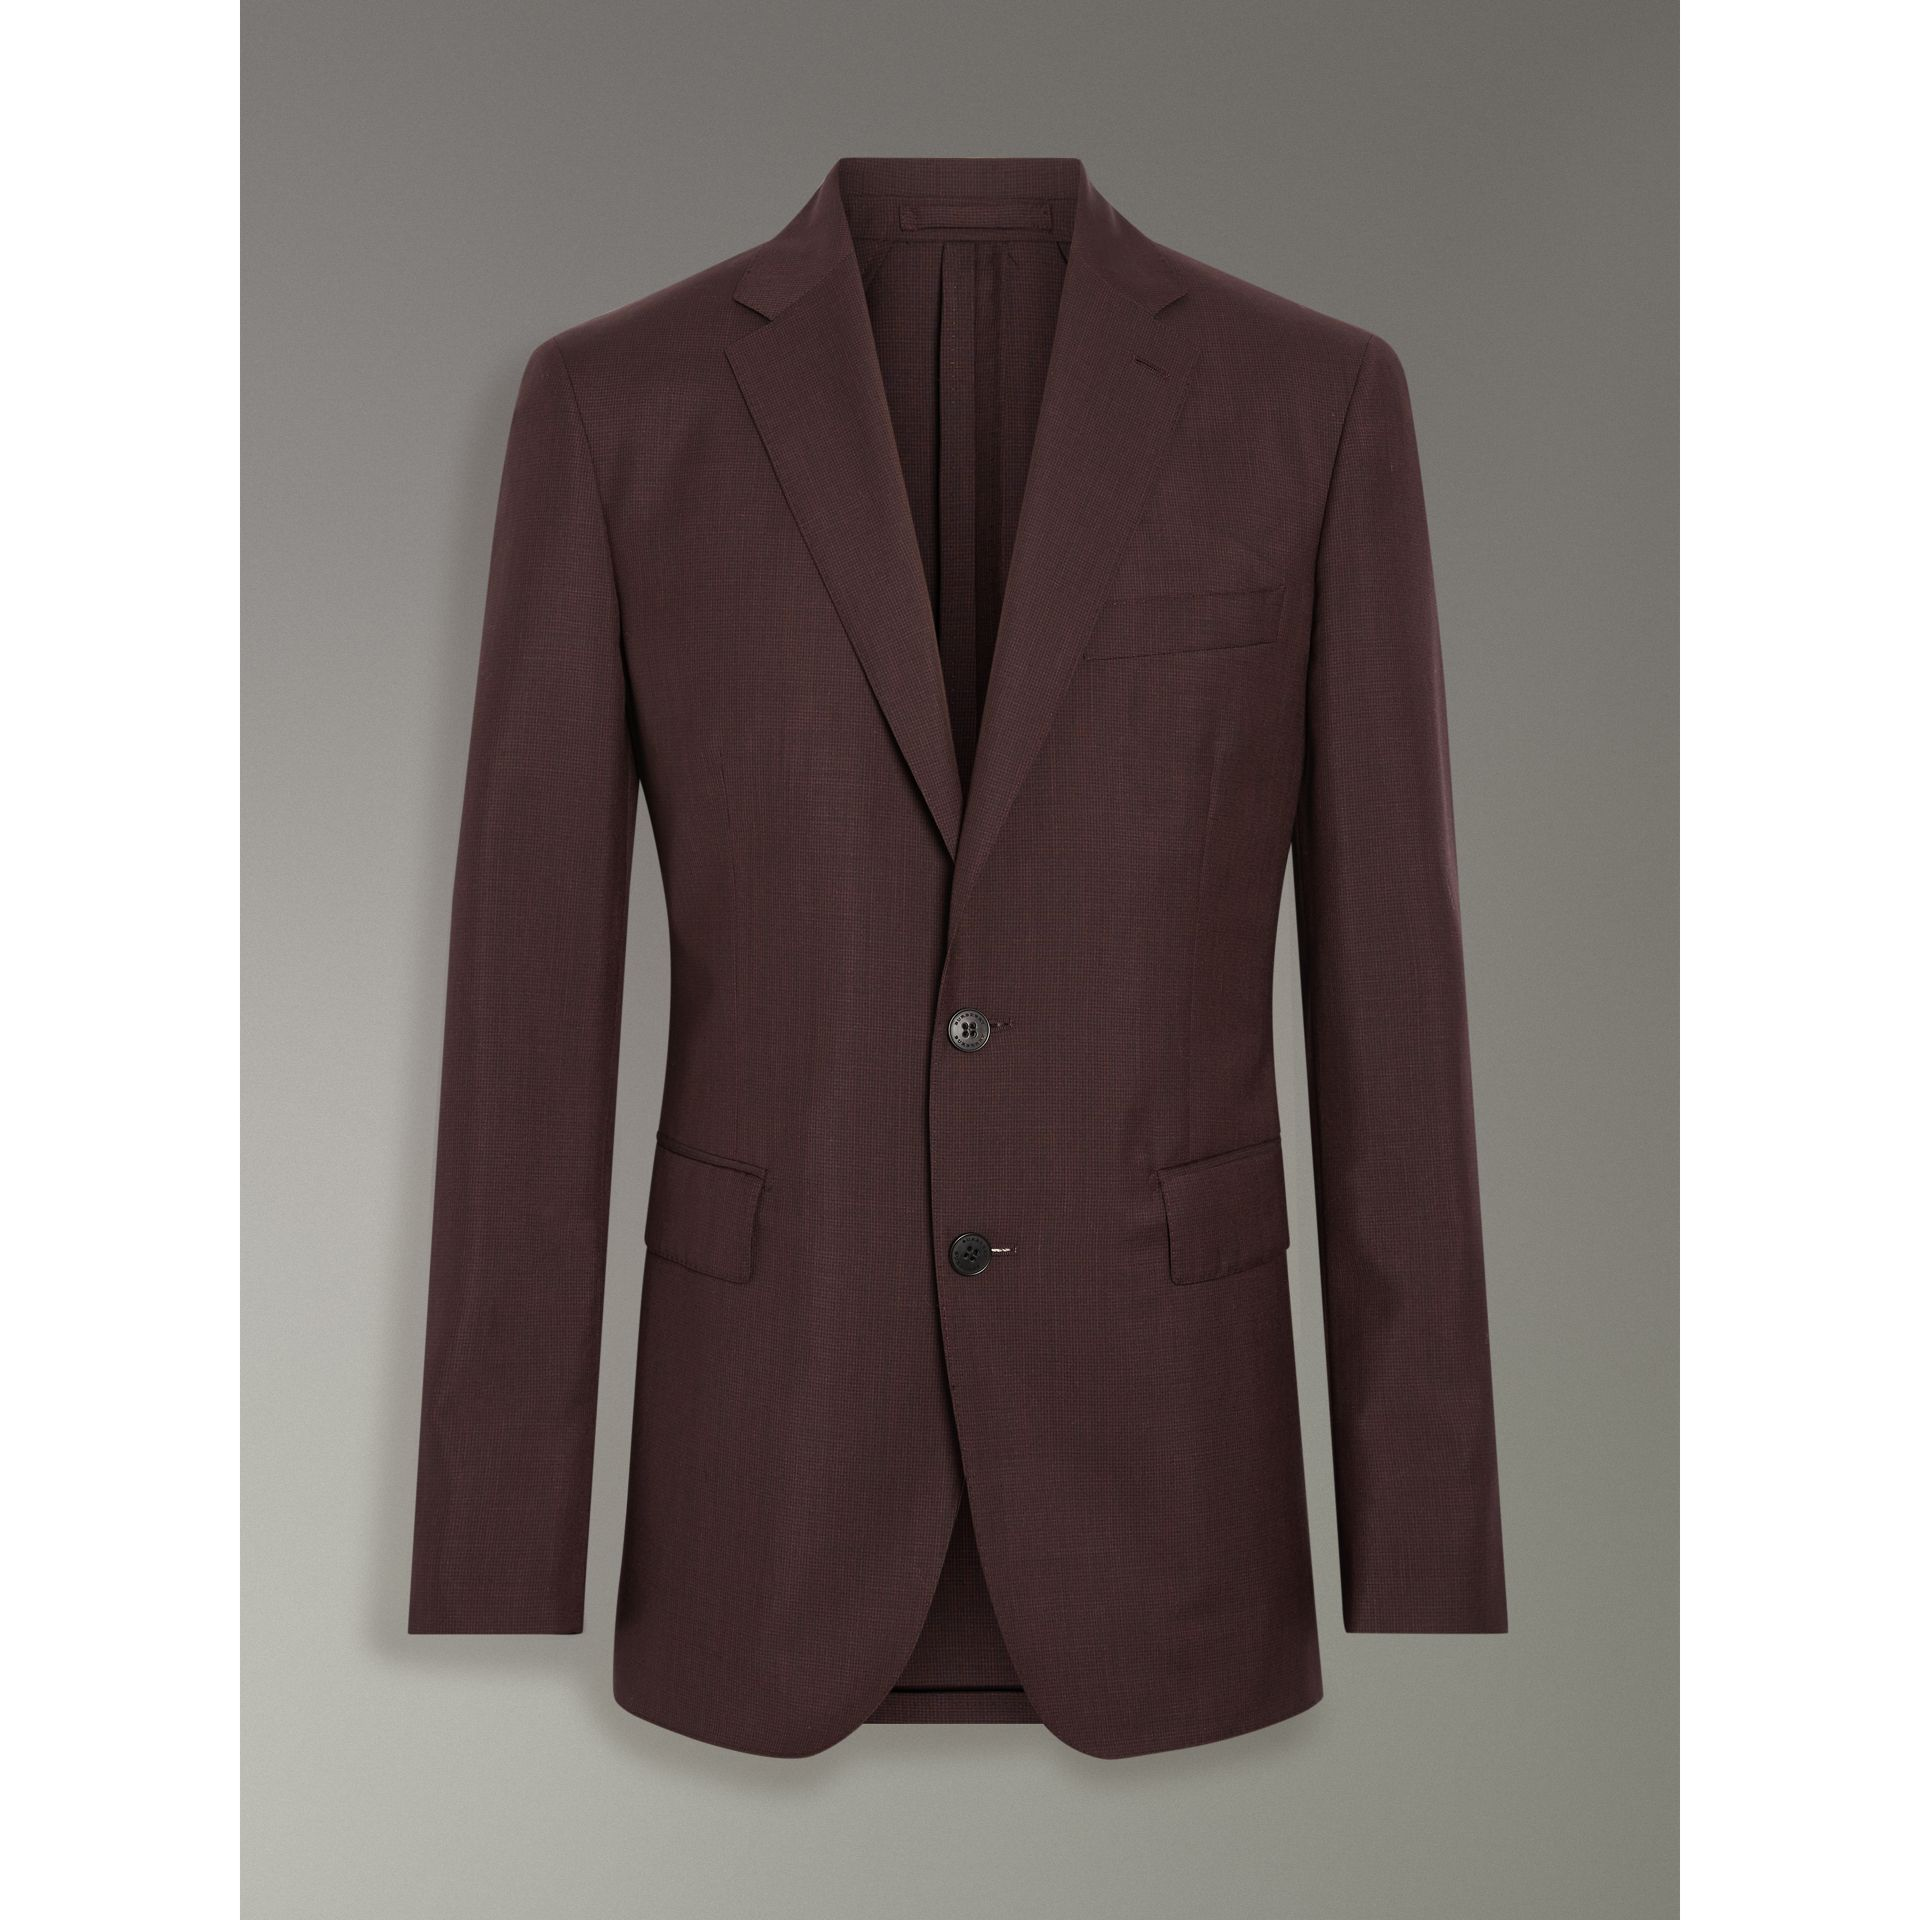 Soho Fit Puppytooth Wool Mohair Suit in Burgundy - Men | Burberry - gallery image 3